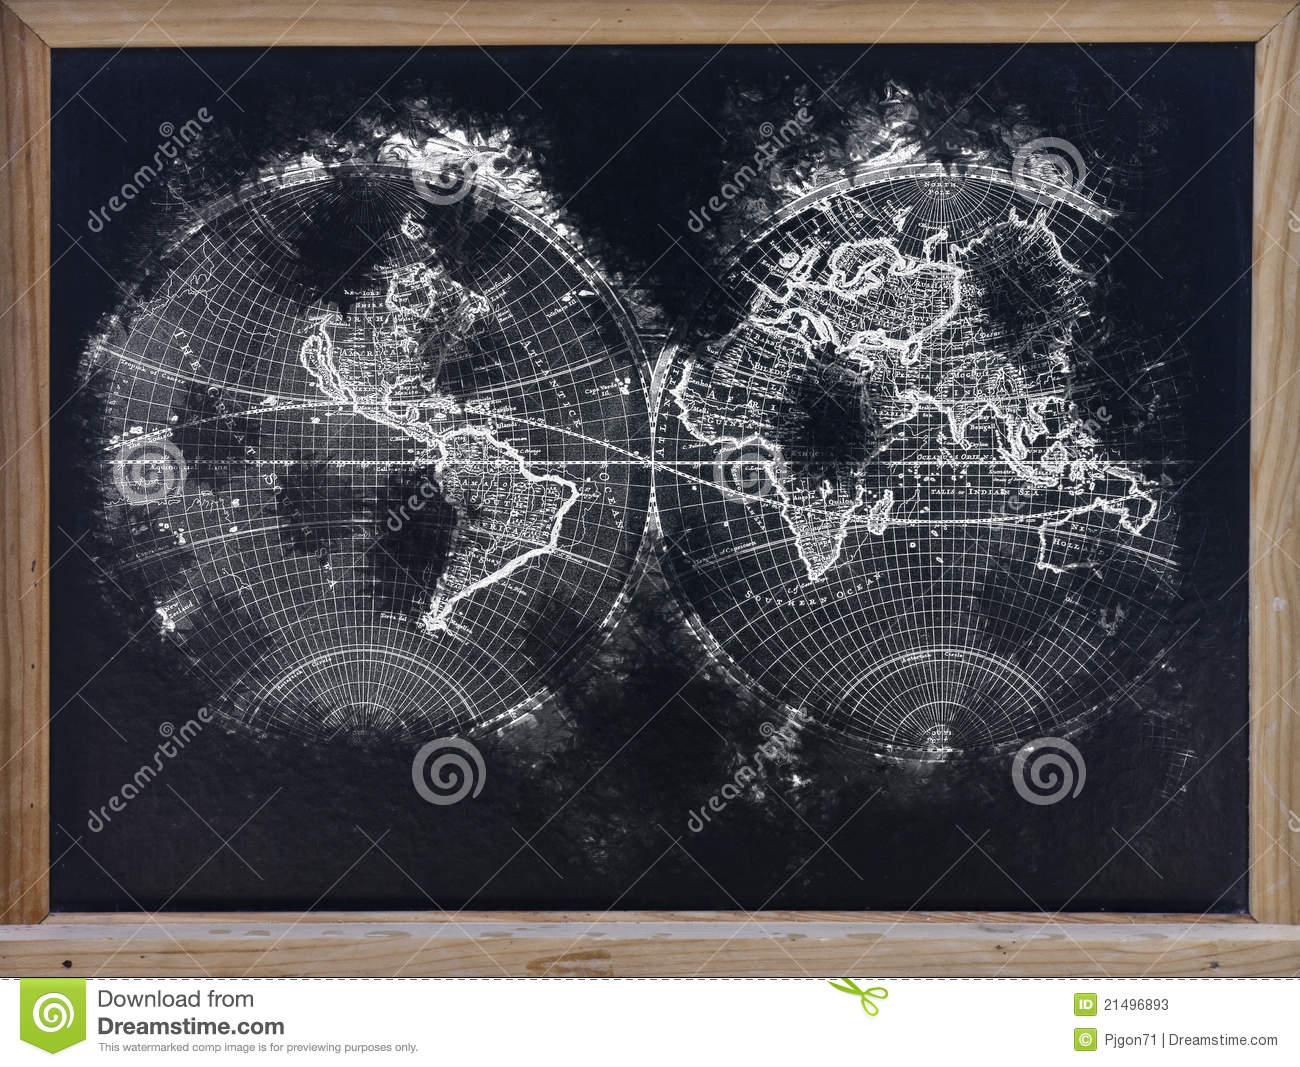 carte du monde dans le tableau noir image stock image 21496893. Black Bedroom Furniture Sets. Home Design Ideas